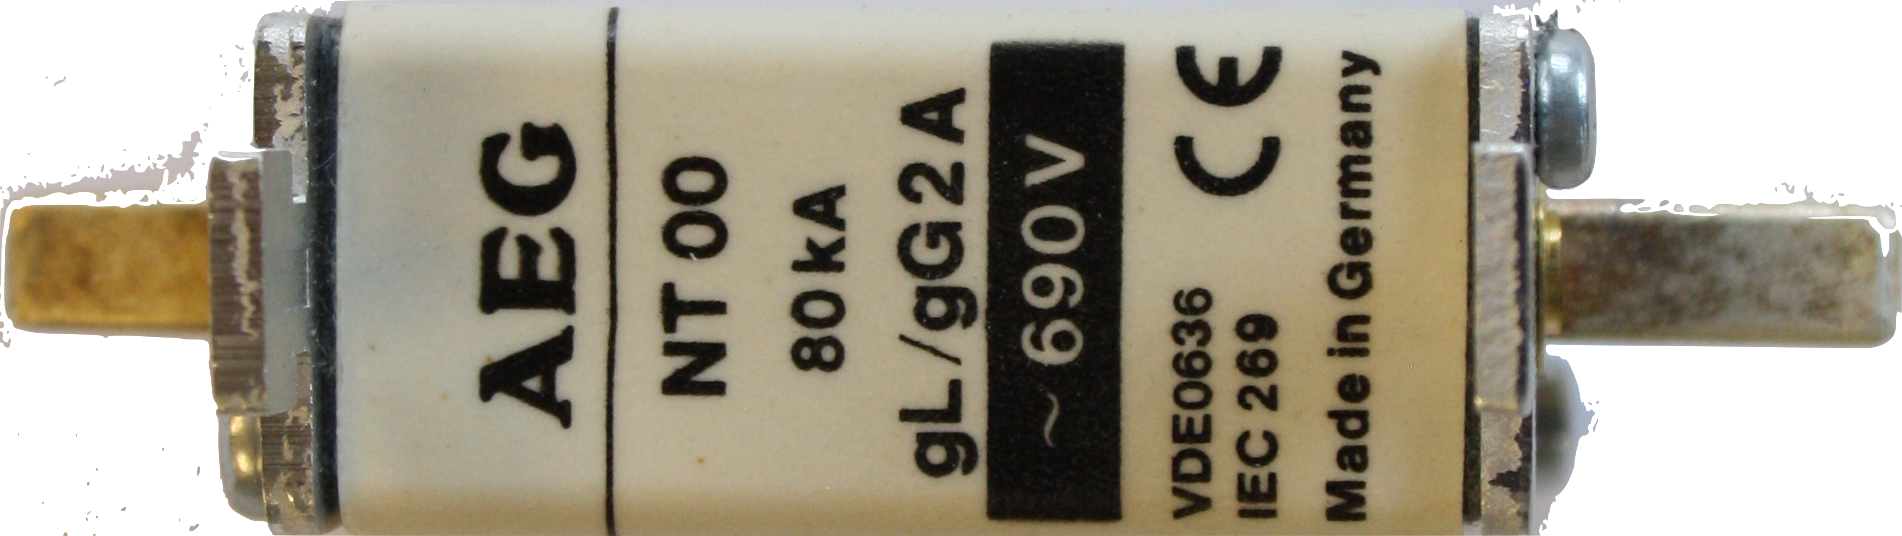 Fuse available for AC/DC protection Image